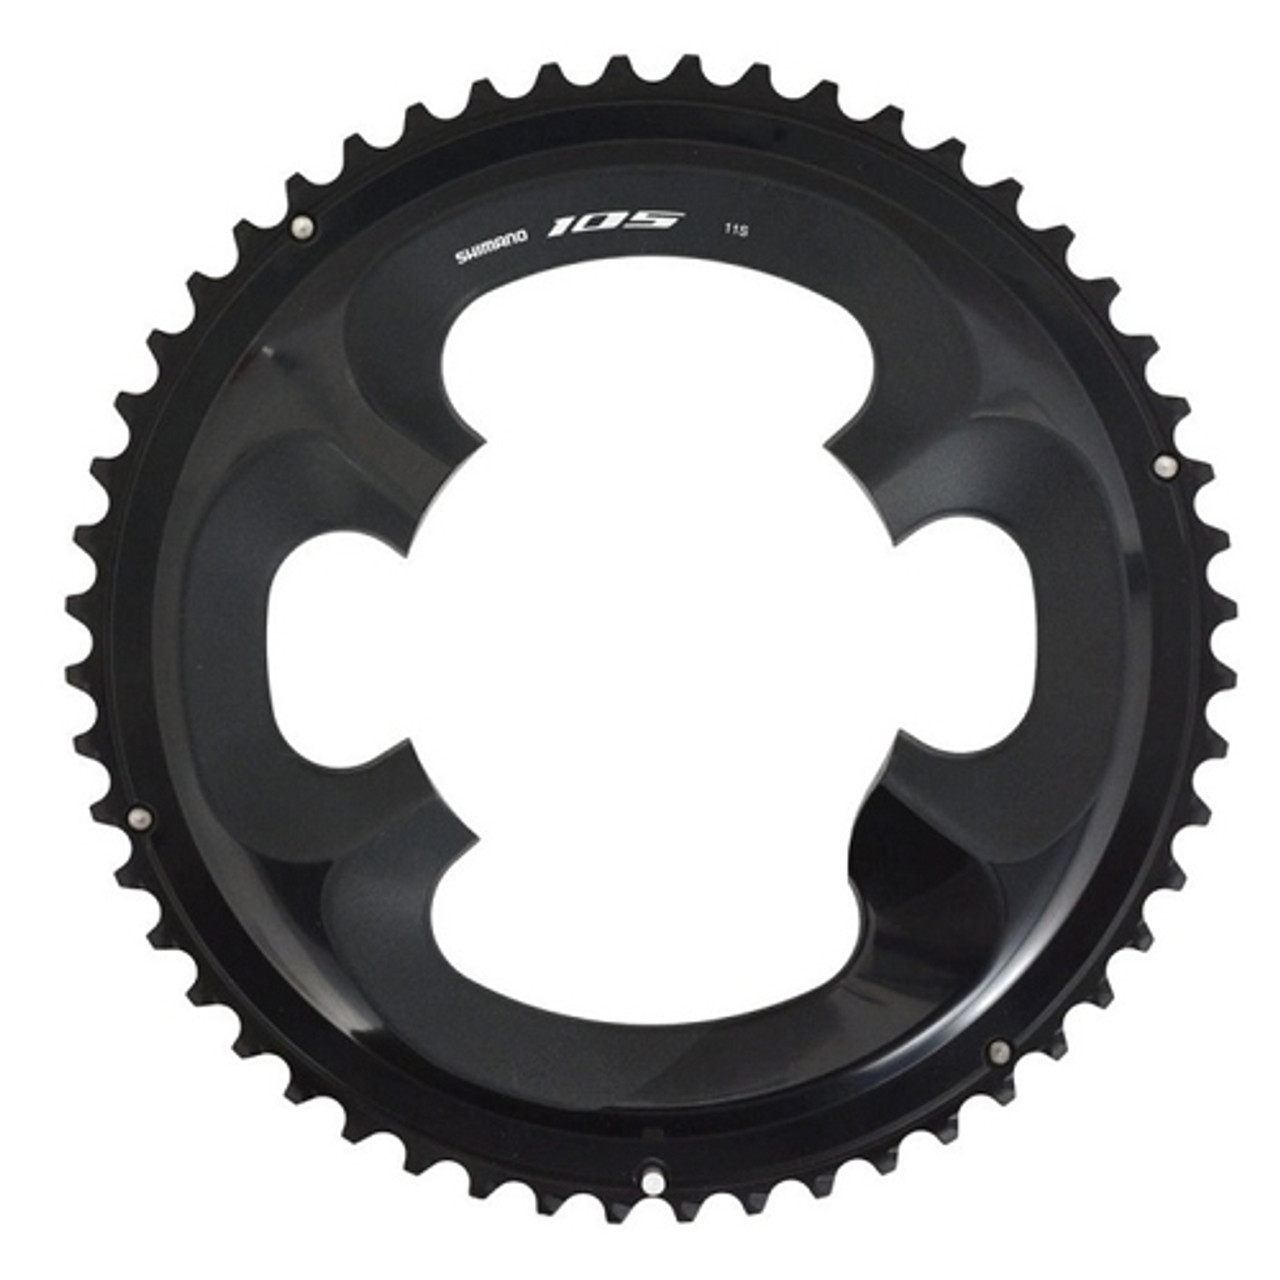 Shimano 105 R7000 11spd Chainring In Black All Sizes